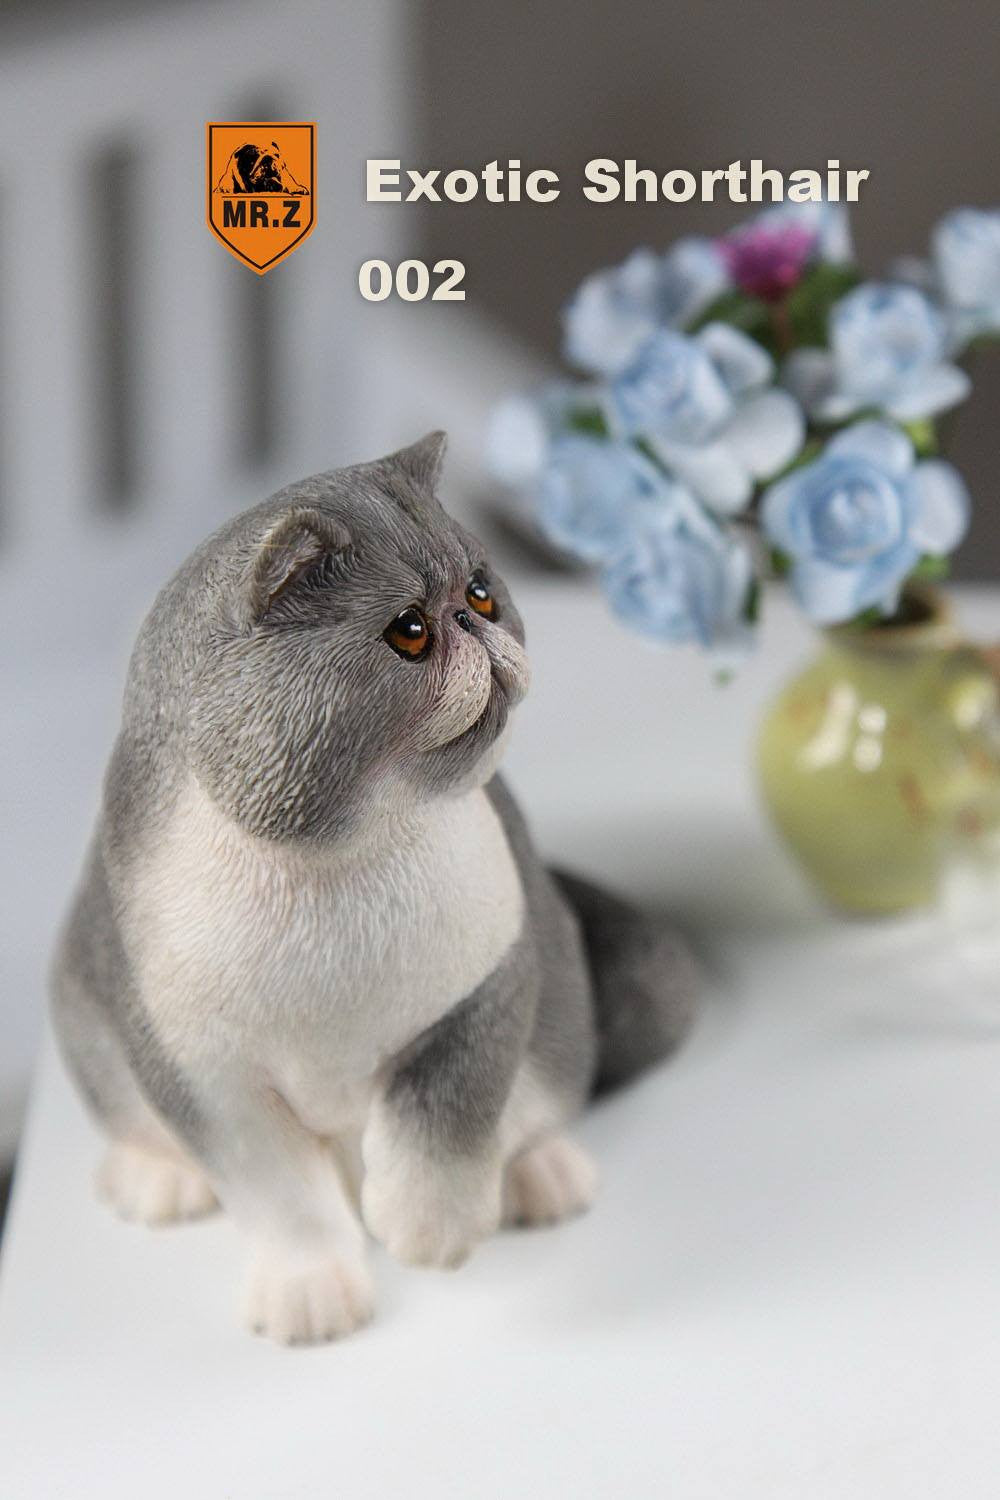 MR.Z - Real Animal Series No.8 - 1/6th Scale Exotic Shorthair Cat (Garfield) 001-005 - Marvelous Toys - 17